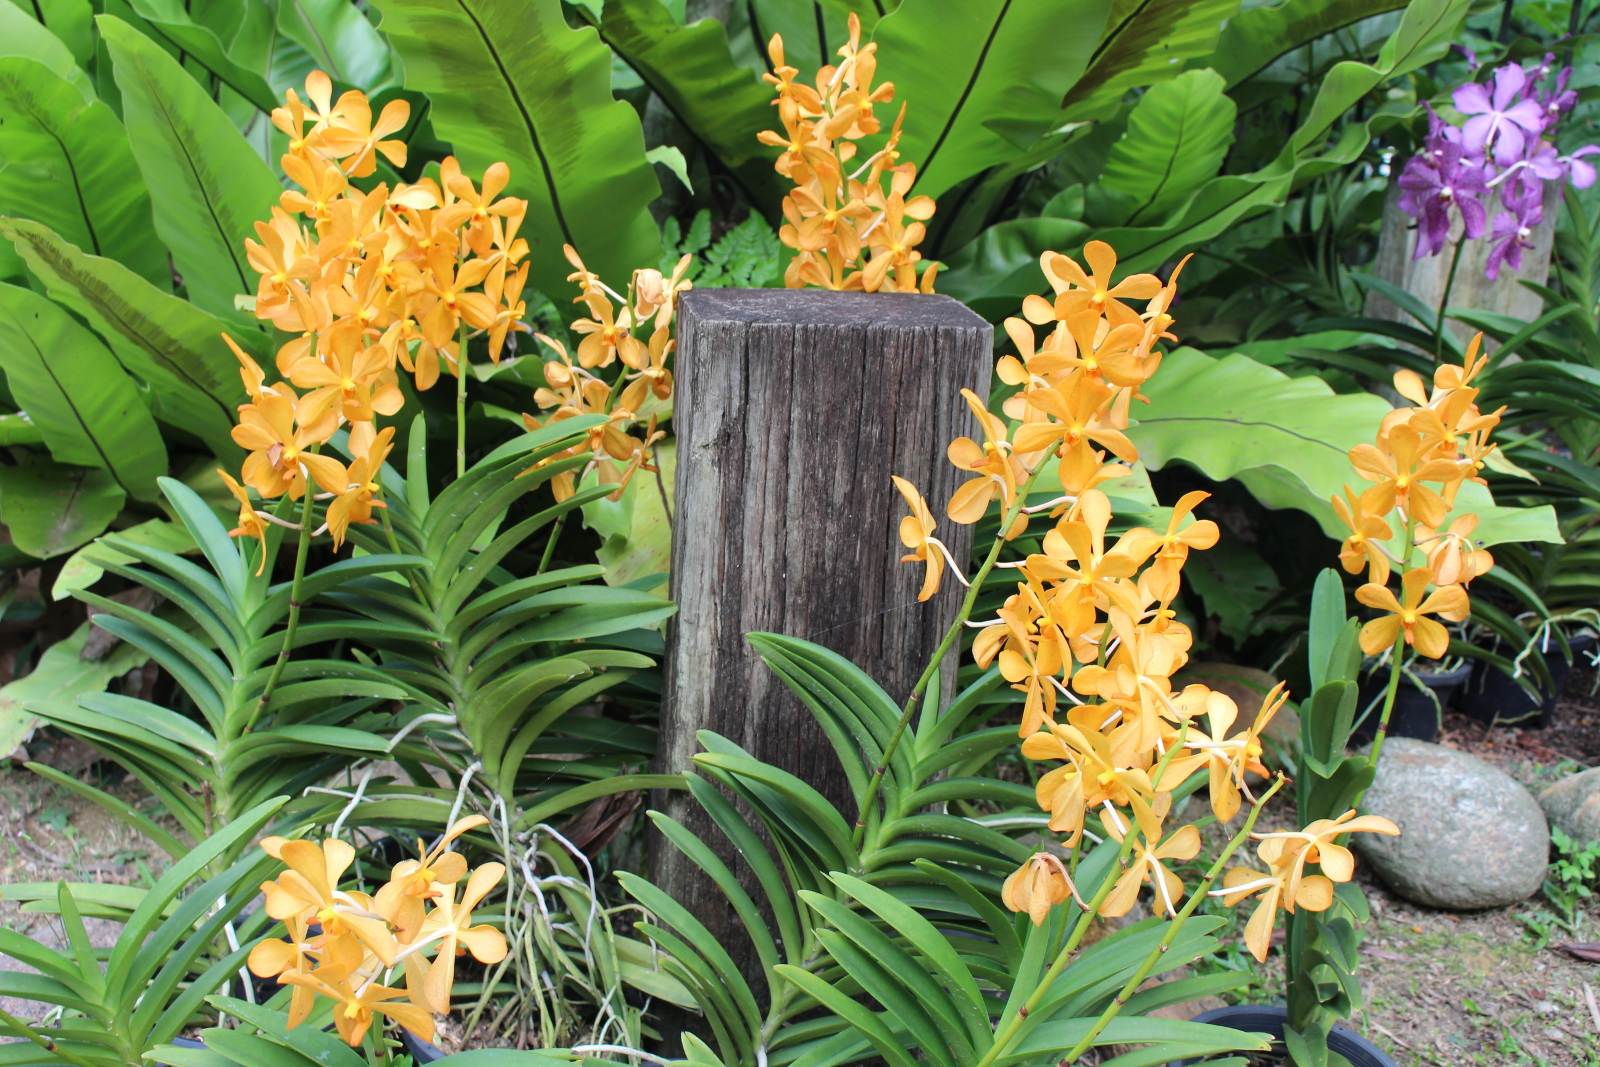 The Small, But Incredibly Beautiful Orchid Garden Occupies A Territory Of  Just One Hectare. However, In This Compact Space Are More Than Six Thousand  ...